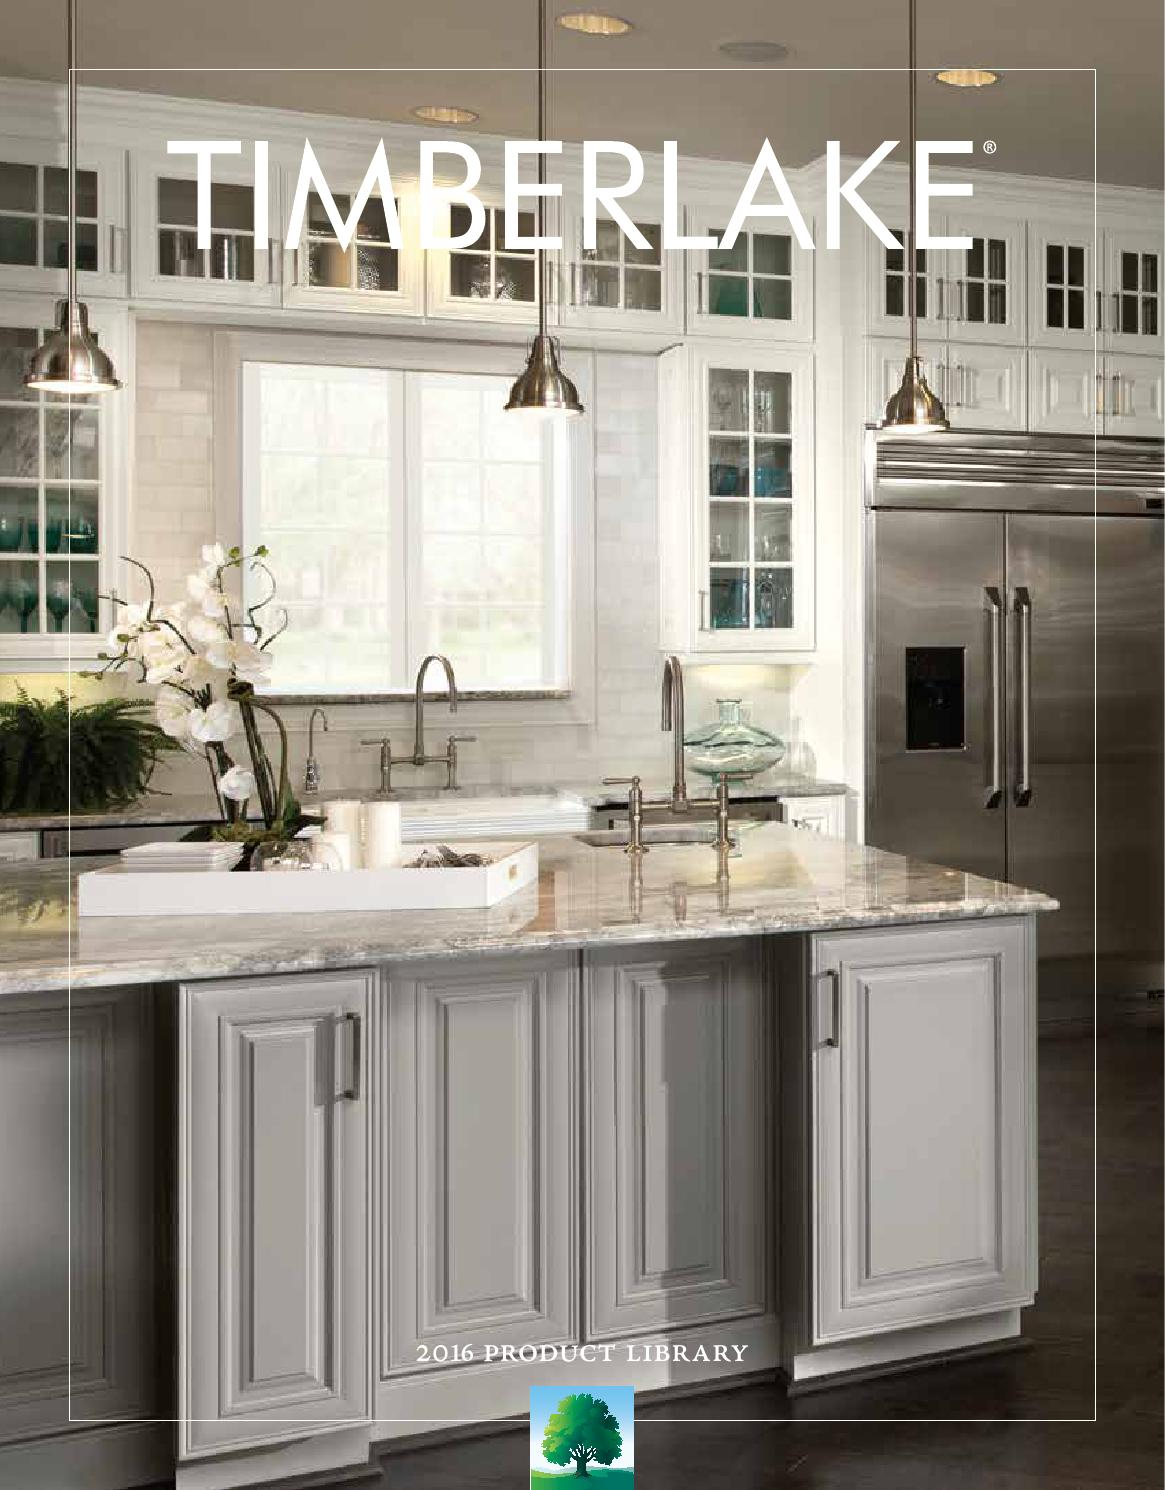 Best Kitchen Gallery: 2016 Product Library By Timberlake Cabi Ry By Timberlake Cabi Ry of Timberlake Kitchen Cabinets on rachelxblog.com